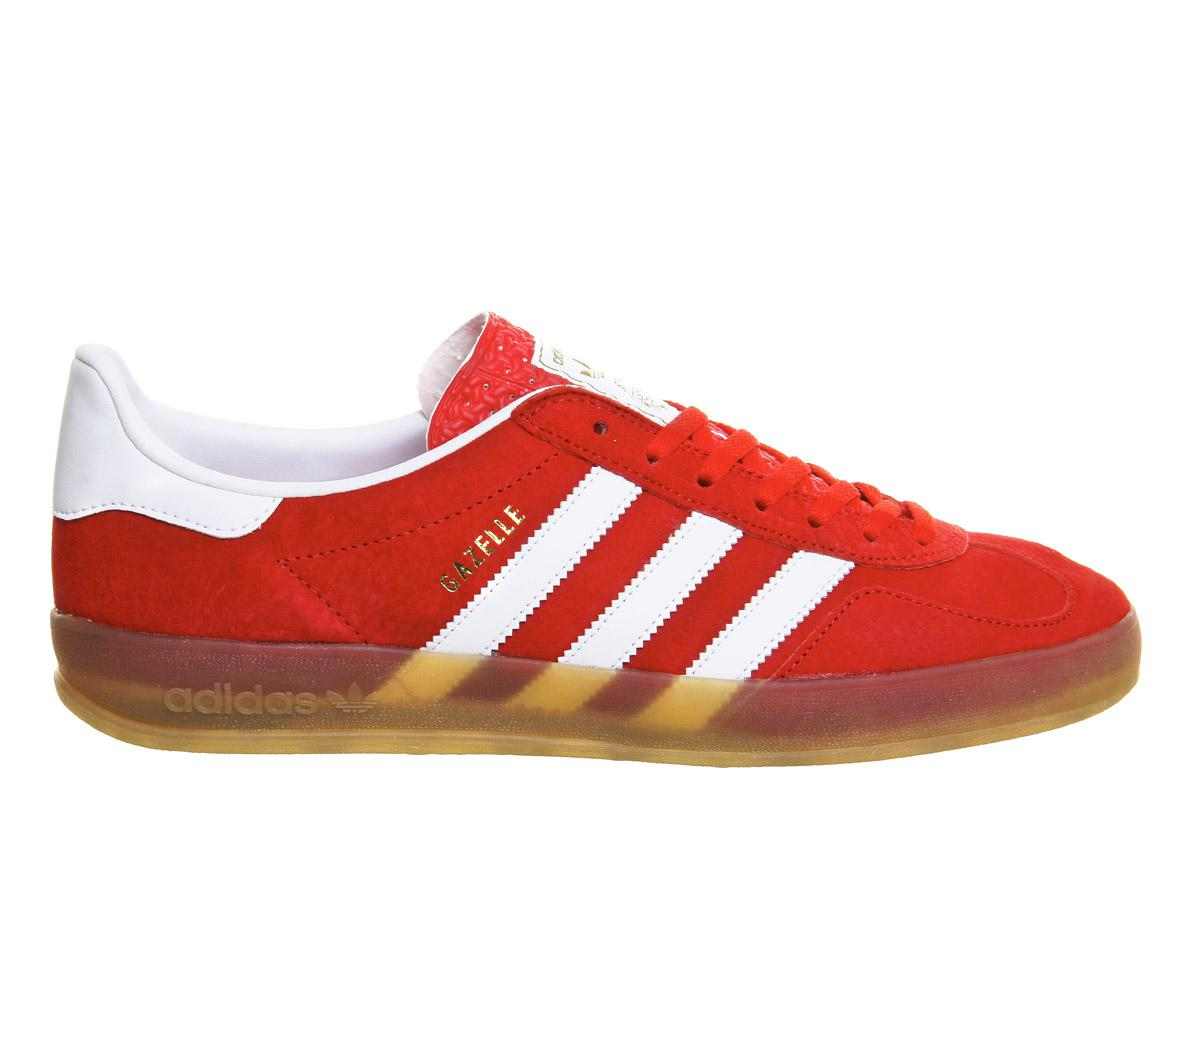 red adidas gazelle indoor trainers